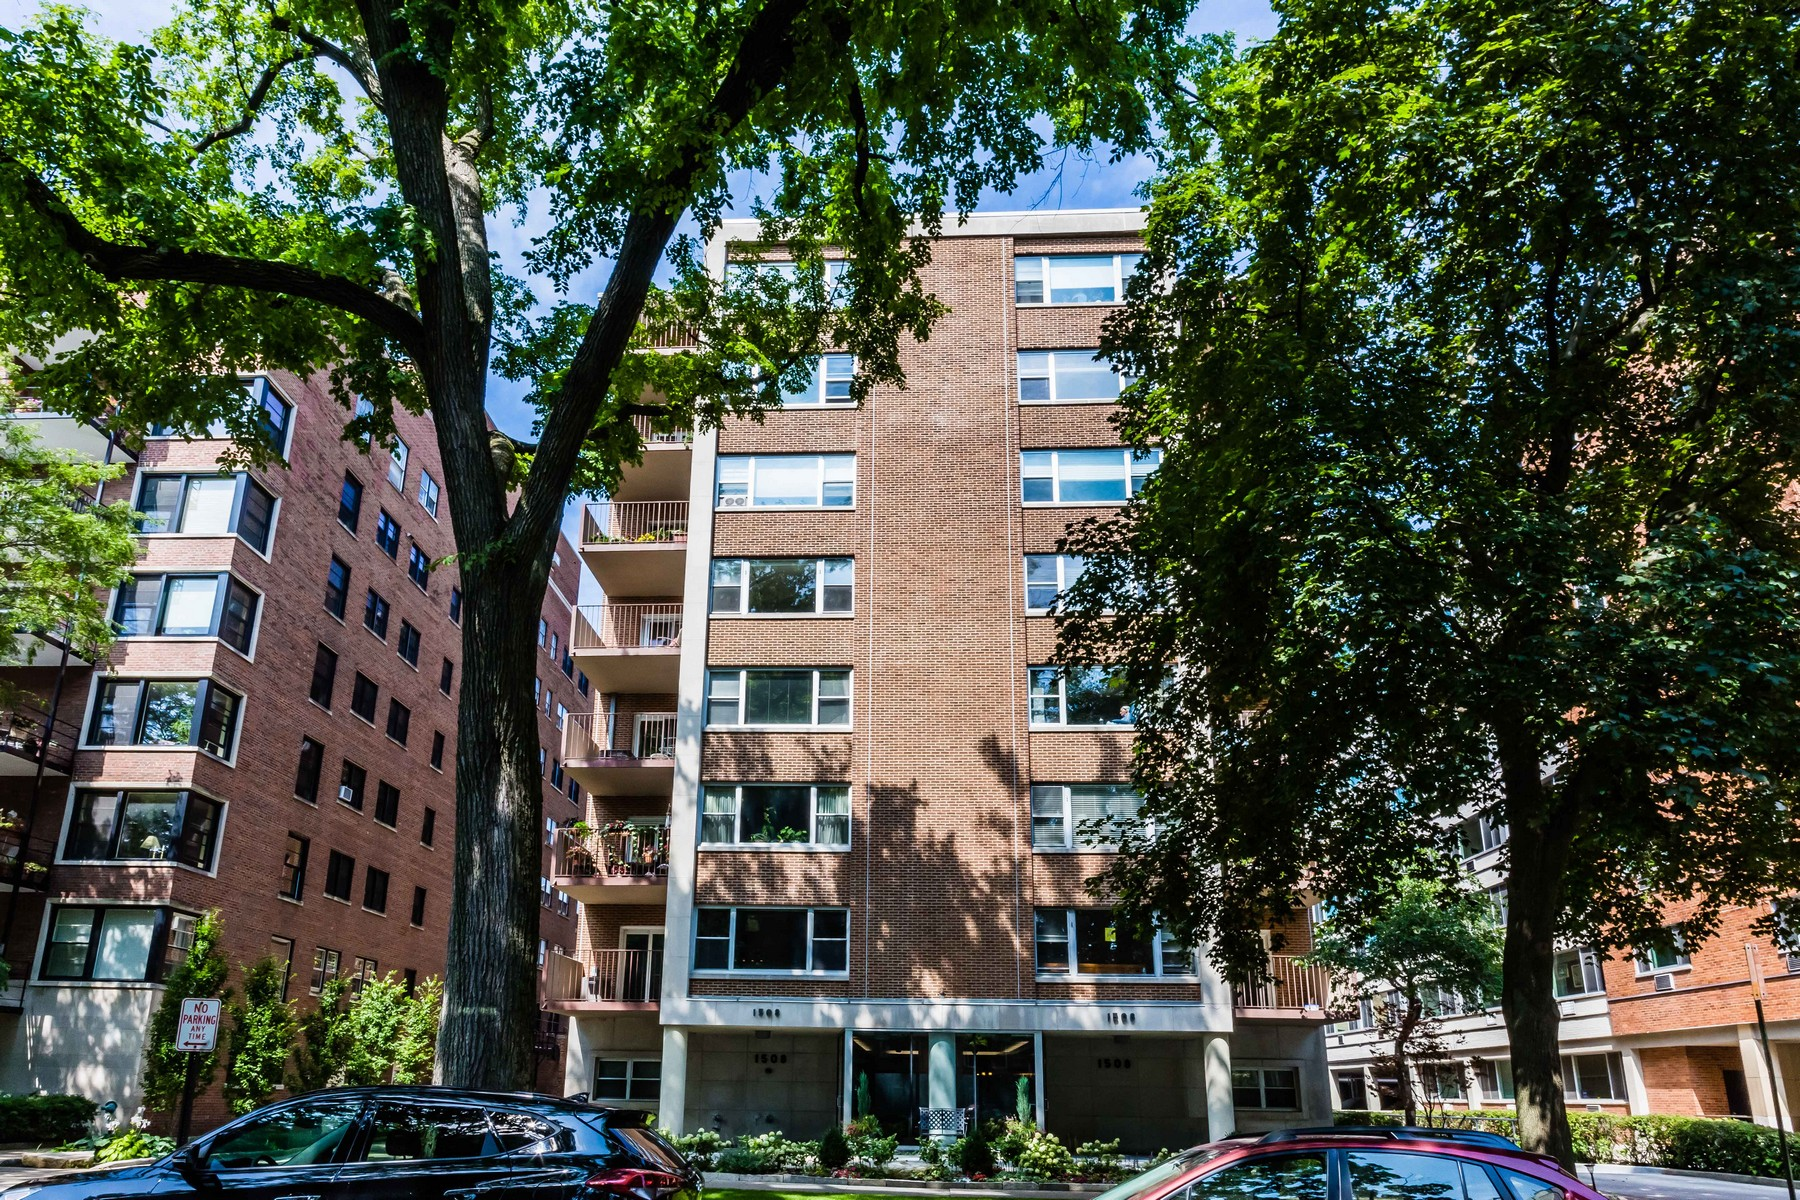 Co-op for Sale at Two Bedroom Condo 1508 Hinman Avenue Unit 5B, Evanston, Illinois, 60201 United States